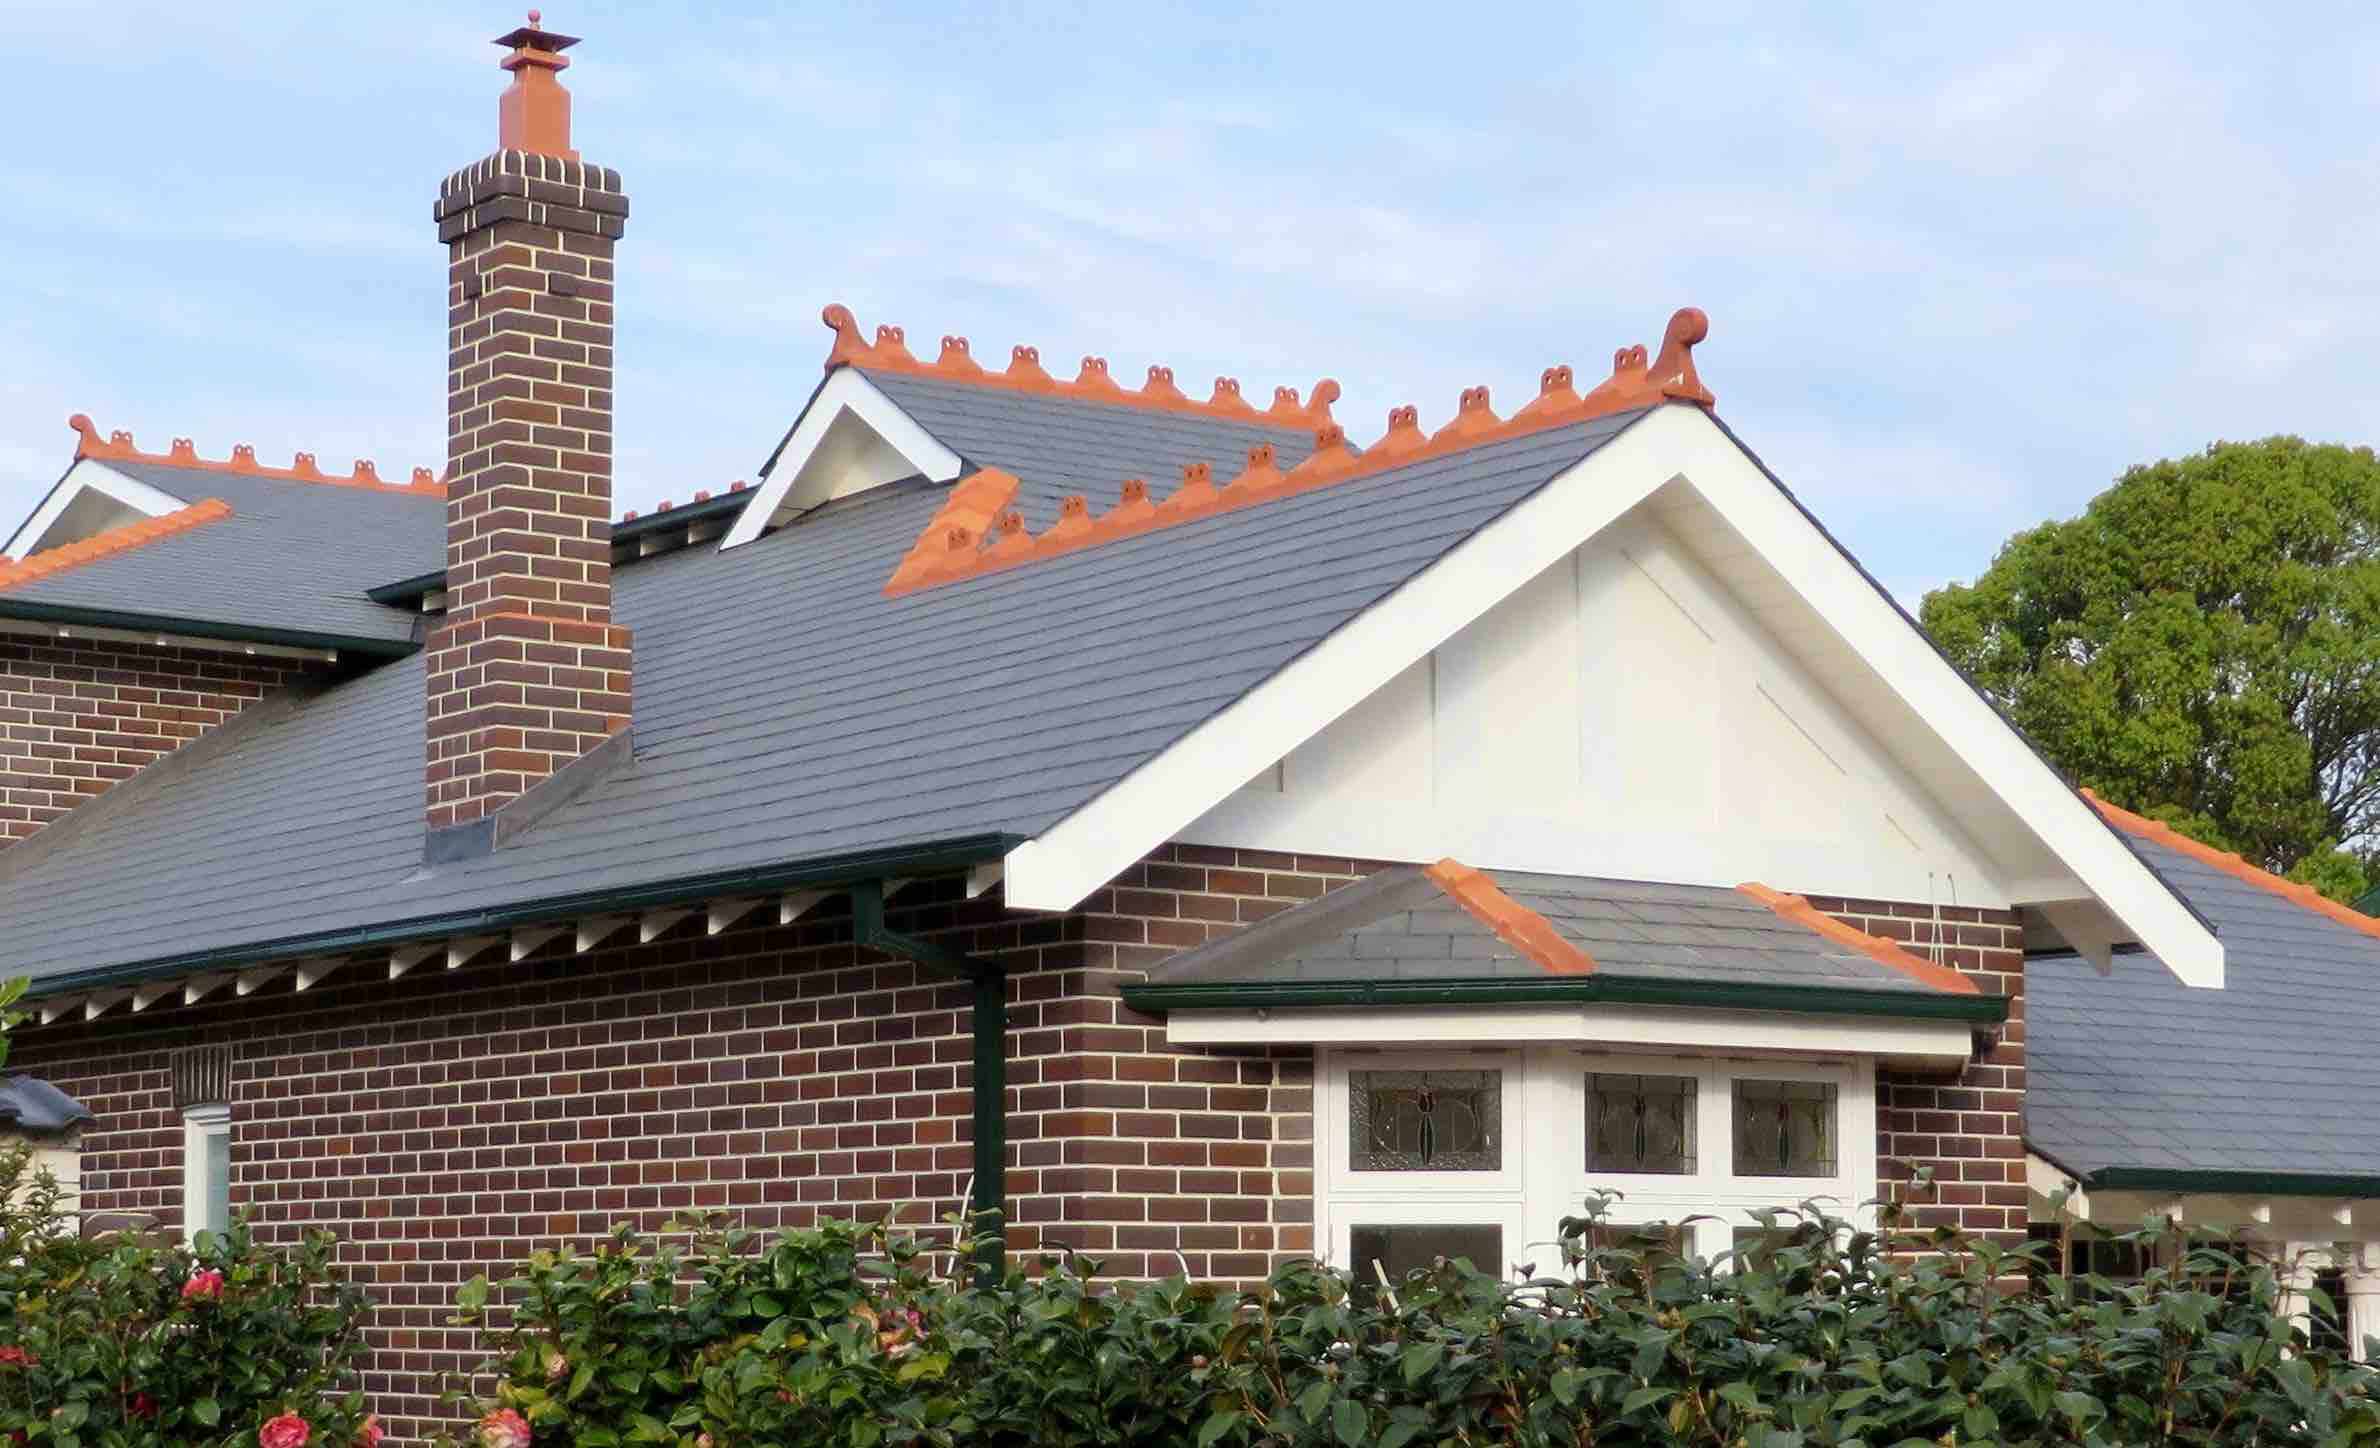 Tapco Inspire Roofing Slate - Burwood